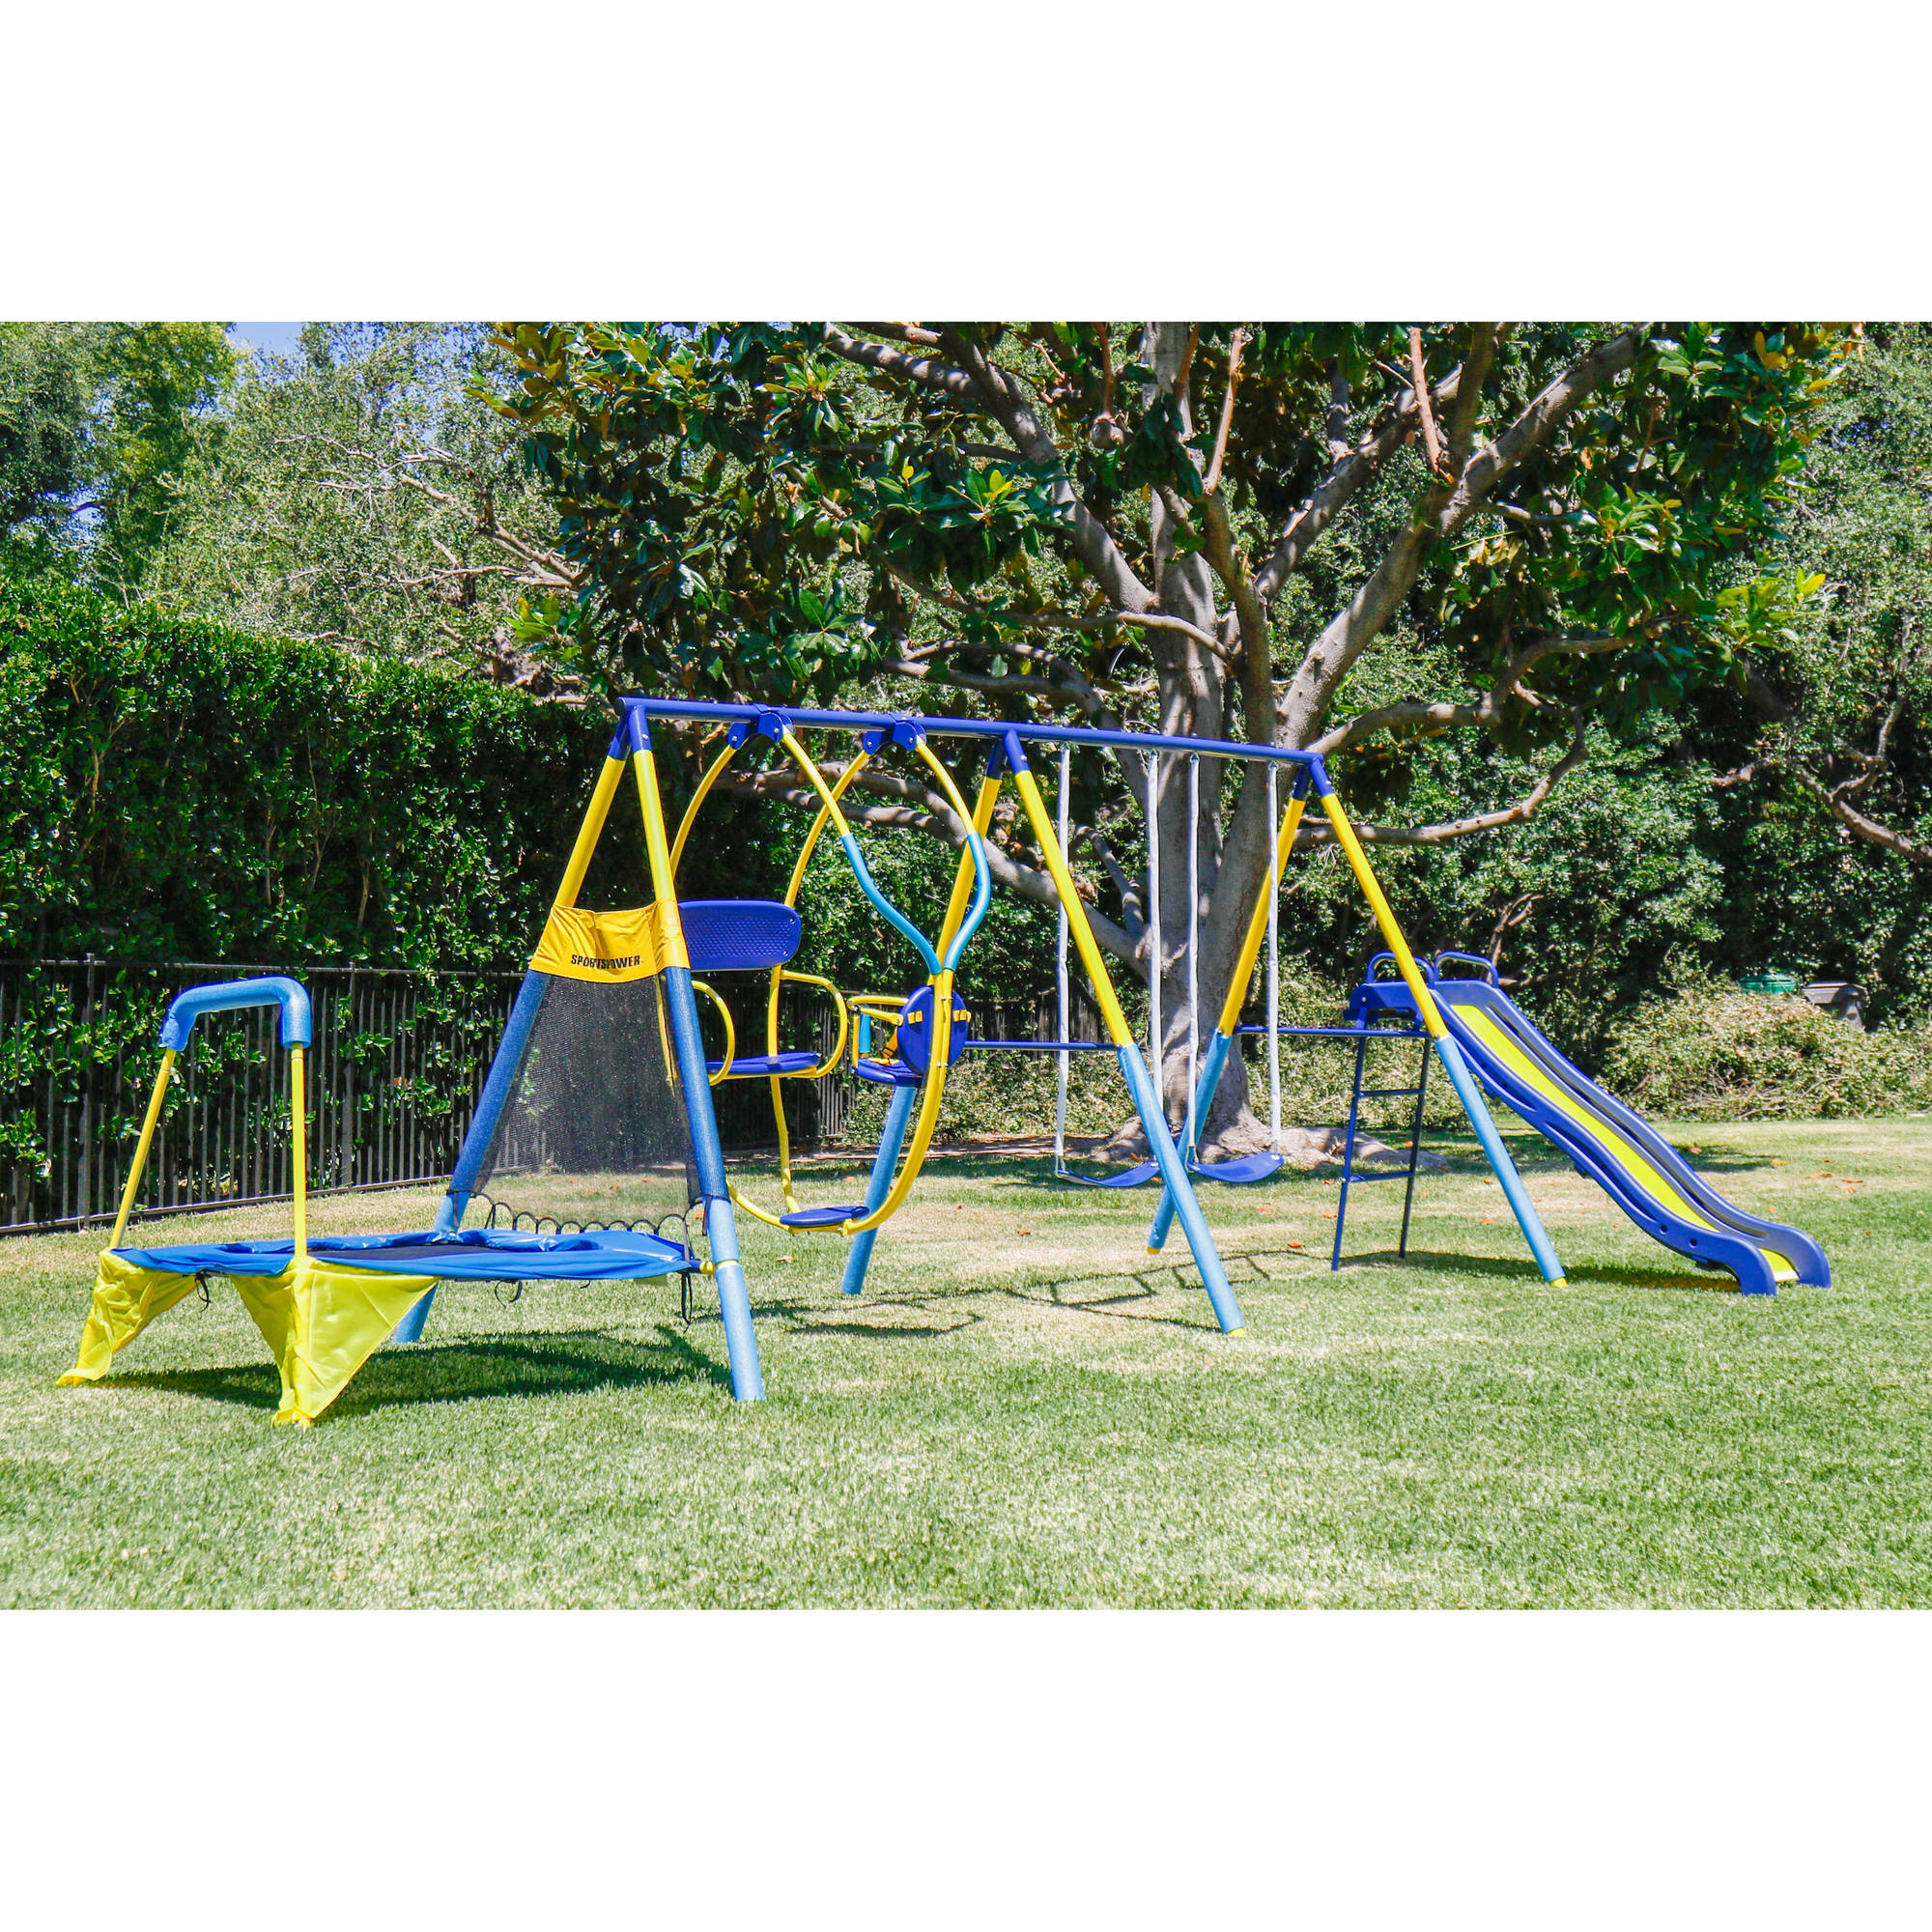 Kids Playground Set Outdoor Swing Slide W Trampoline Backyard